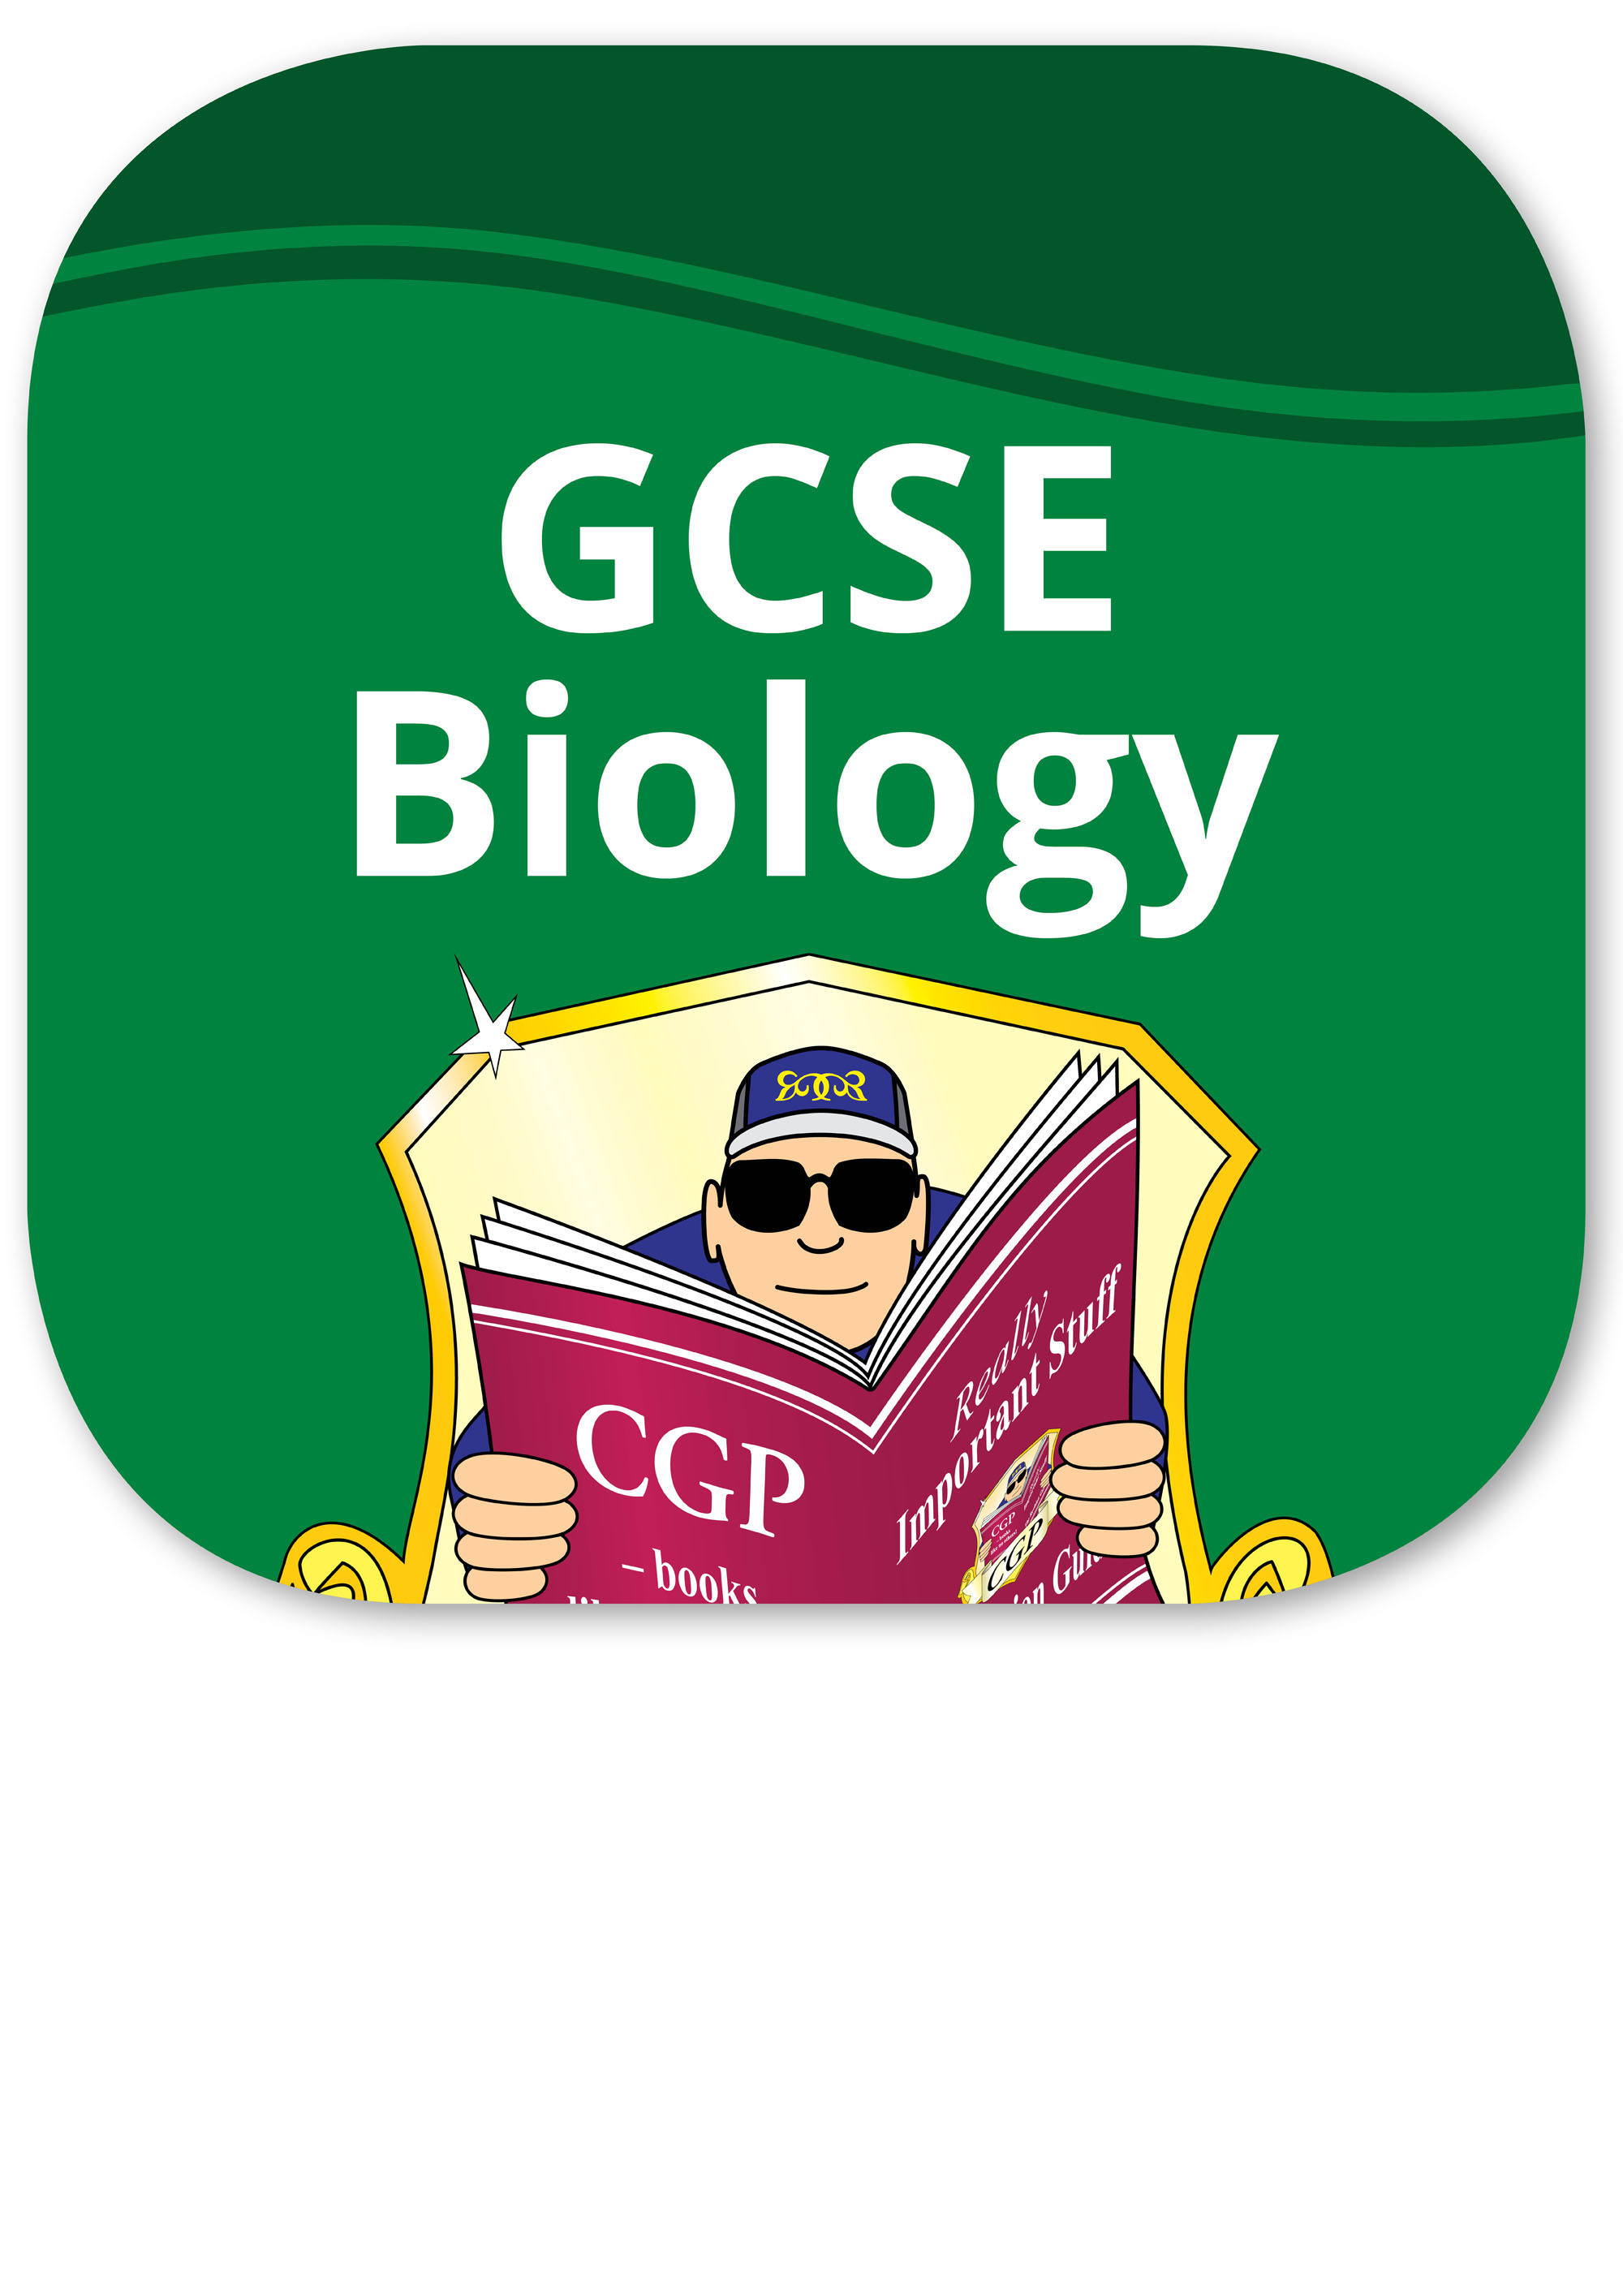 BAGT41 - New GCSE Biology AQA Revision App - for Android